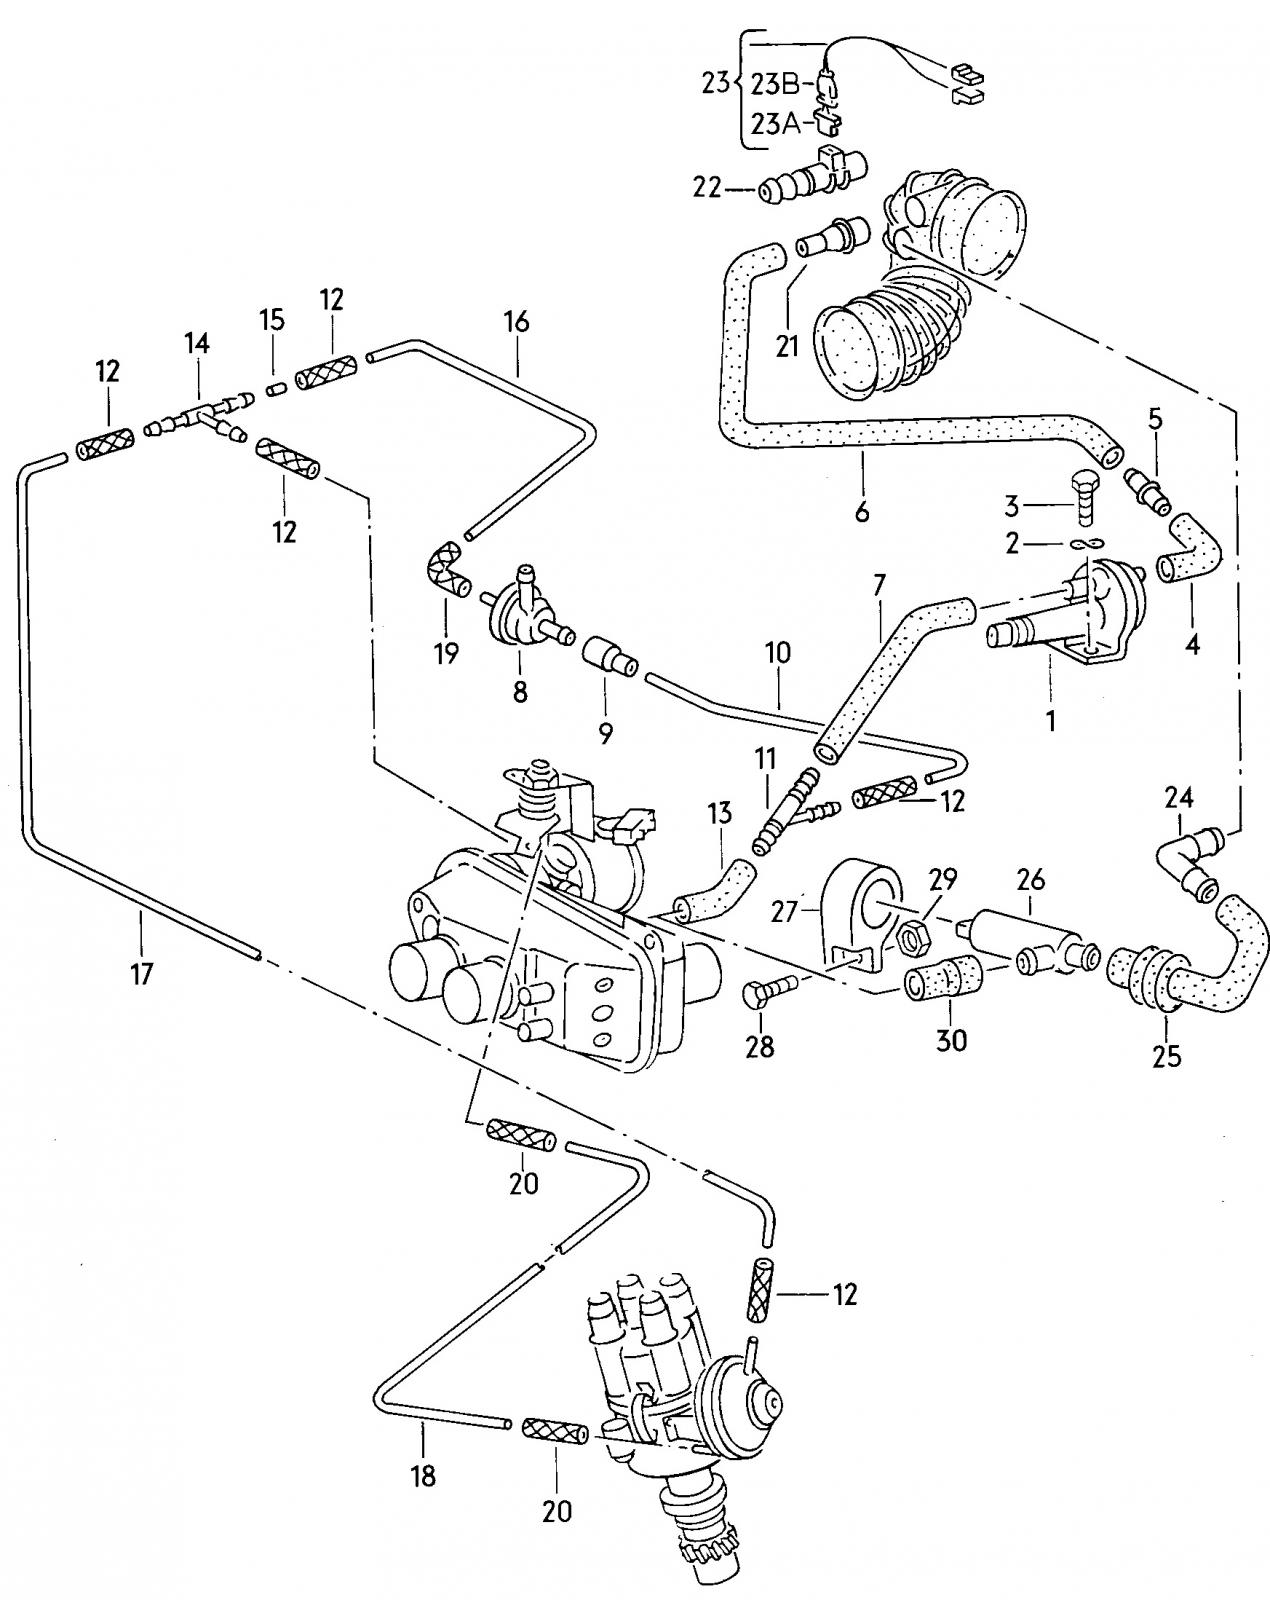 View topic 1 9l 1985 air intake image may have been reduced in size click image to view fullscreen vanagon engine schematics 2 1 vanagon engine diagram